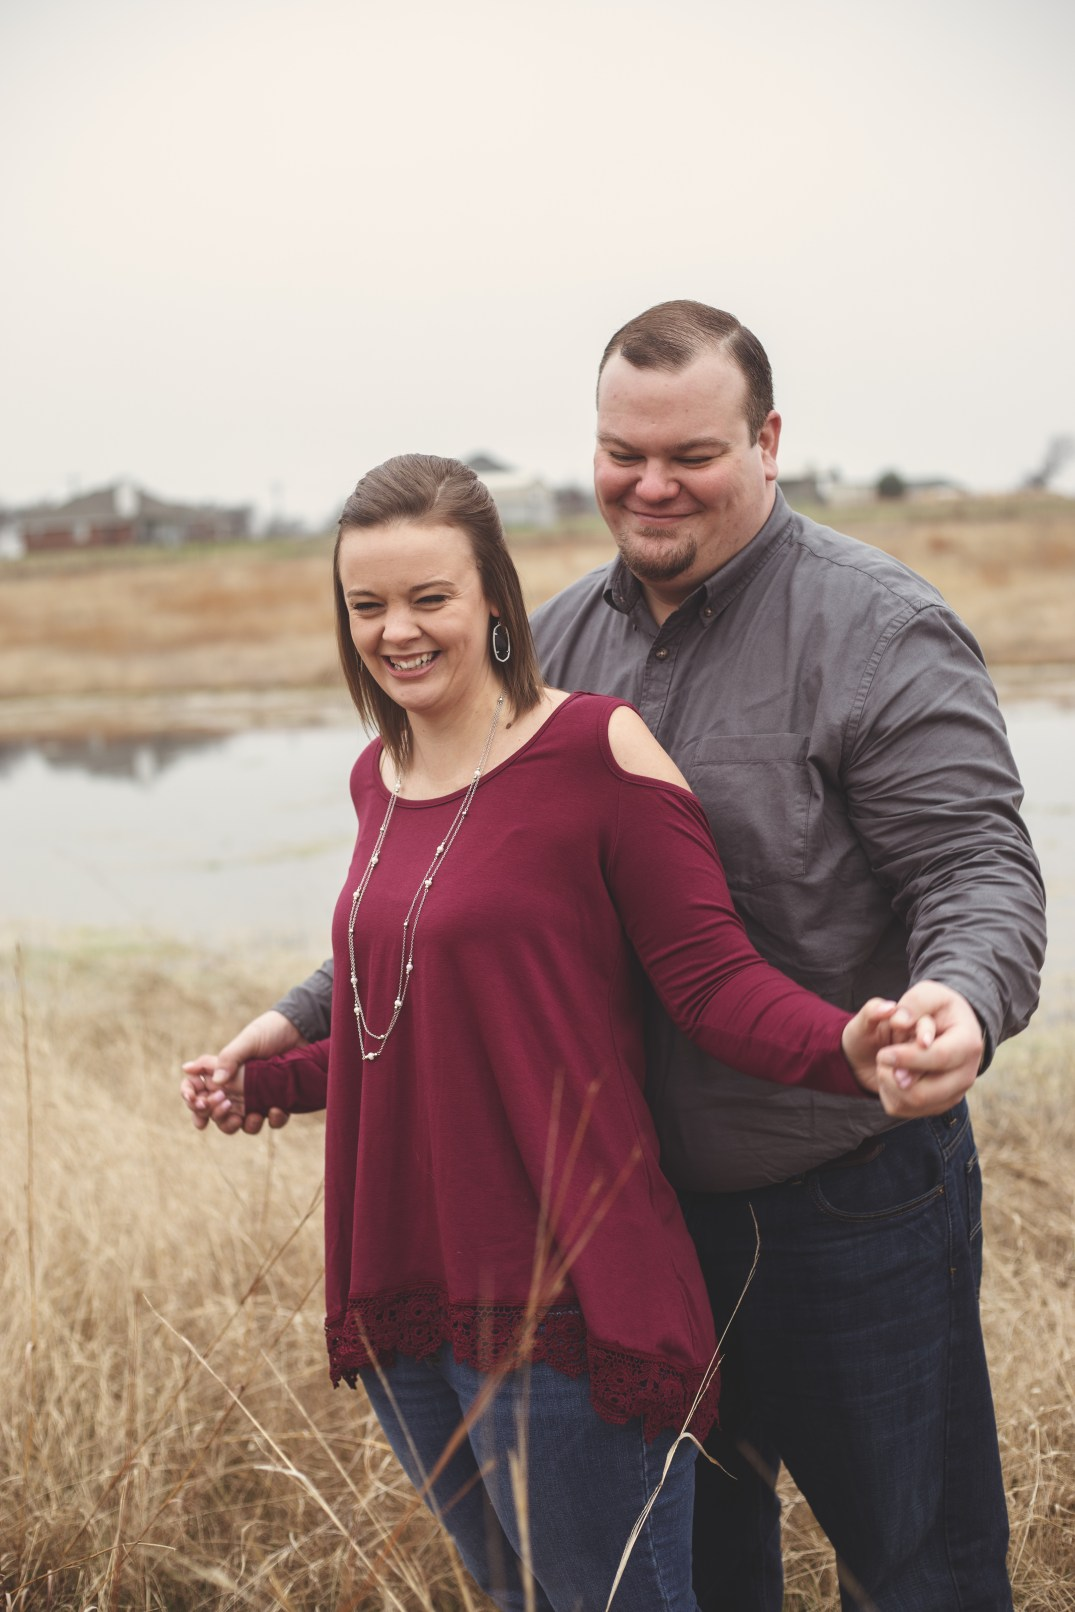 Engagement Session at Hawthorn Hills Ranch in Krum Texas